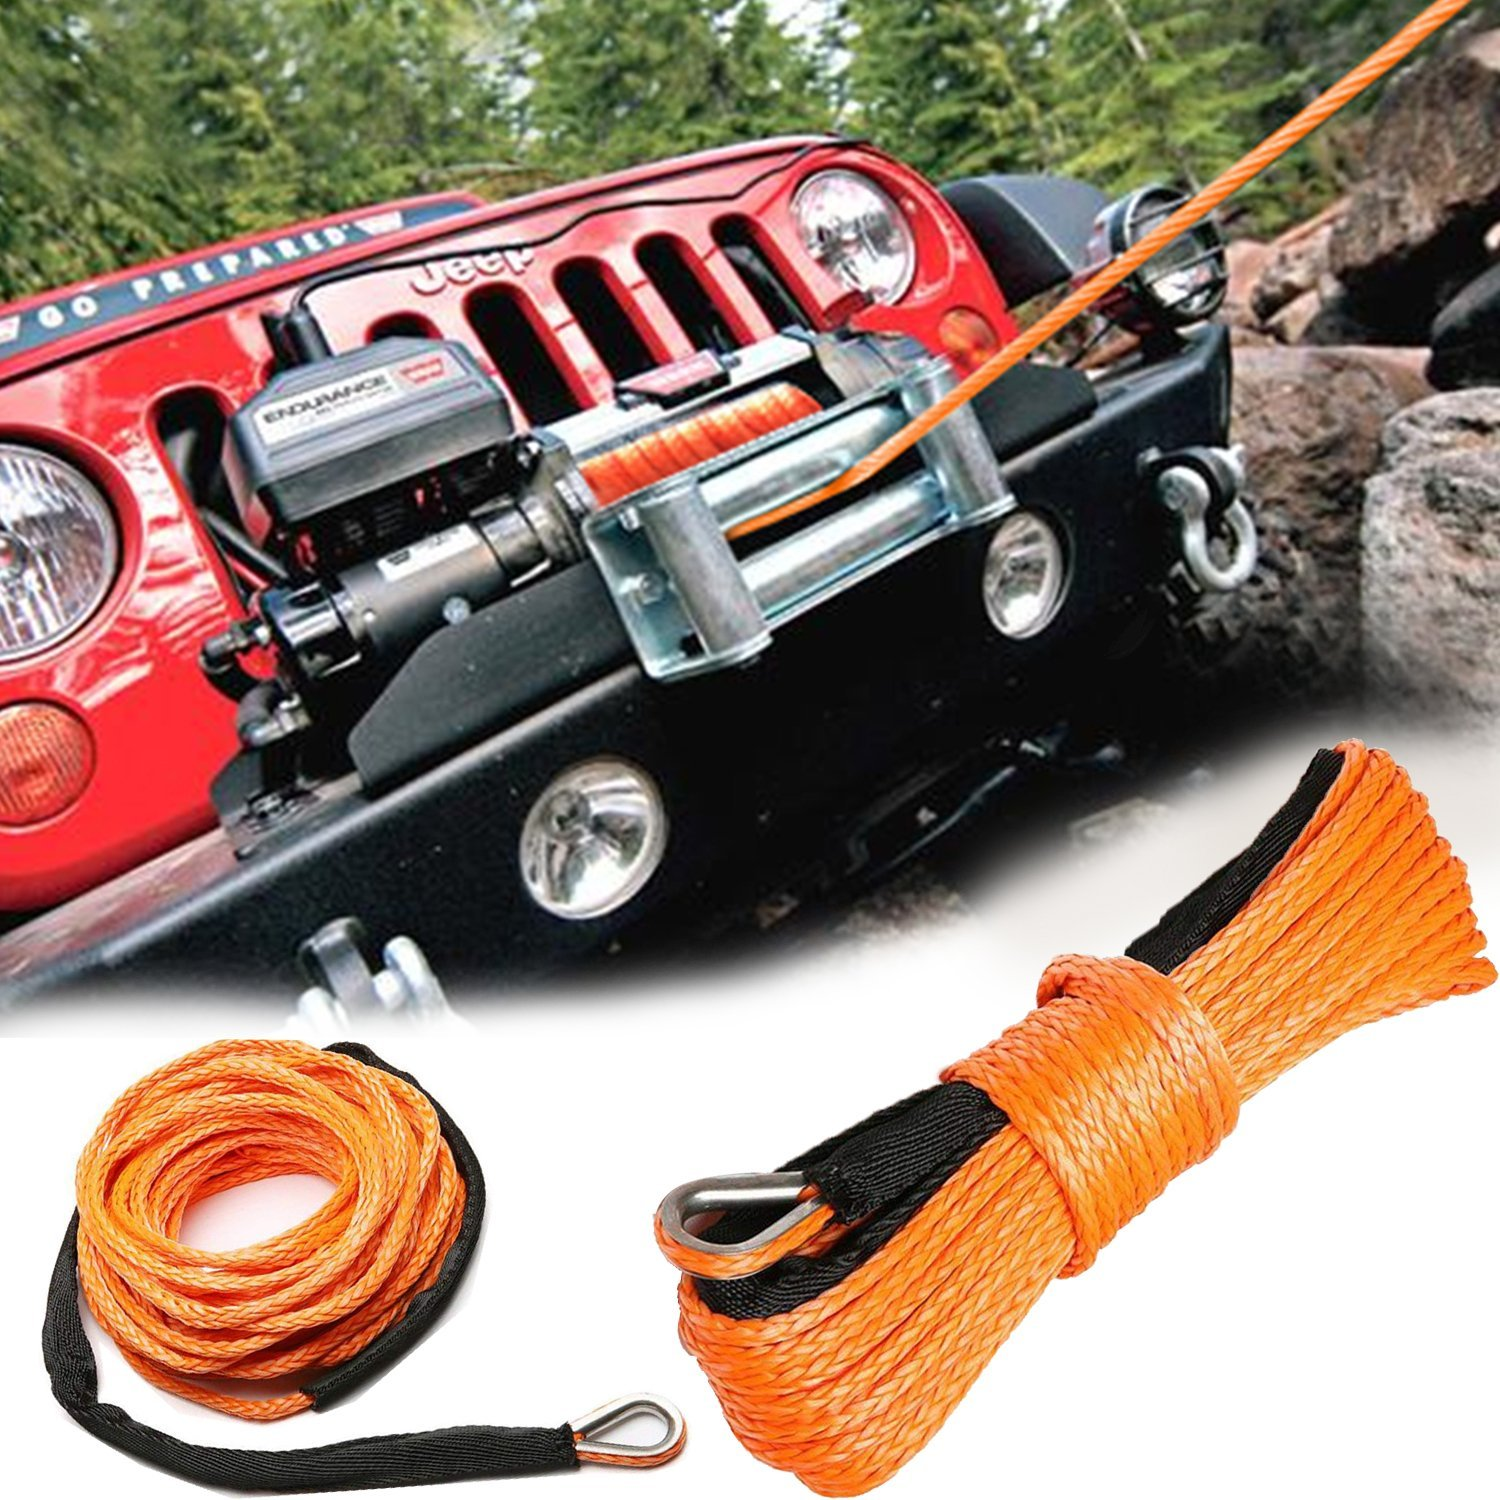 MOEBULB Car Synthetic Winch Rope Kit 5700+LBs 50'x1/4'' Winch Line Cable Sheath Winches ATV UTV SUV Truck Boat Ramsey Stainless Steel Thimble (Orange) by MOEBULB (Image #9)